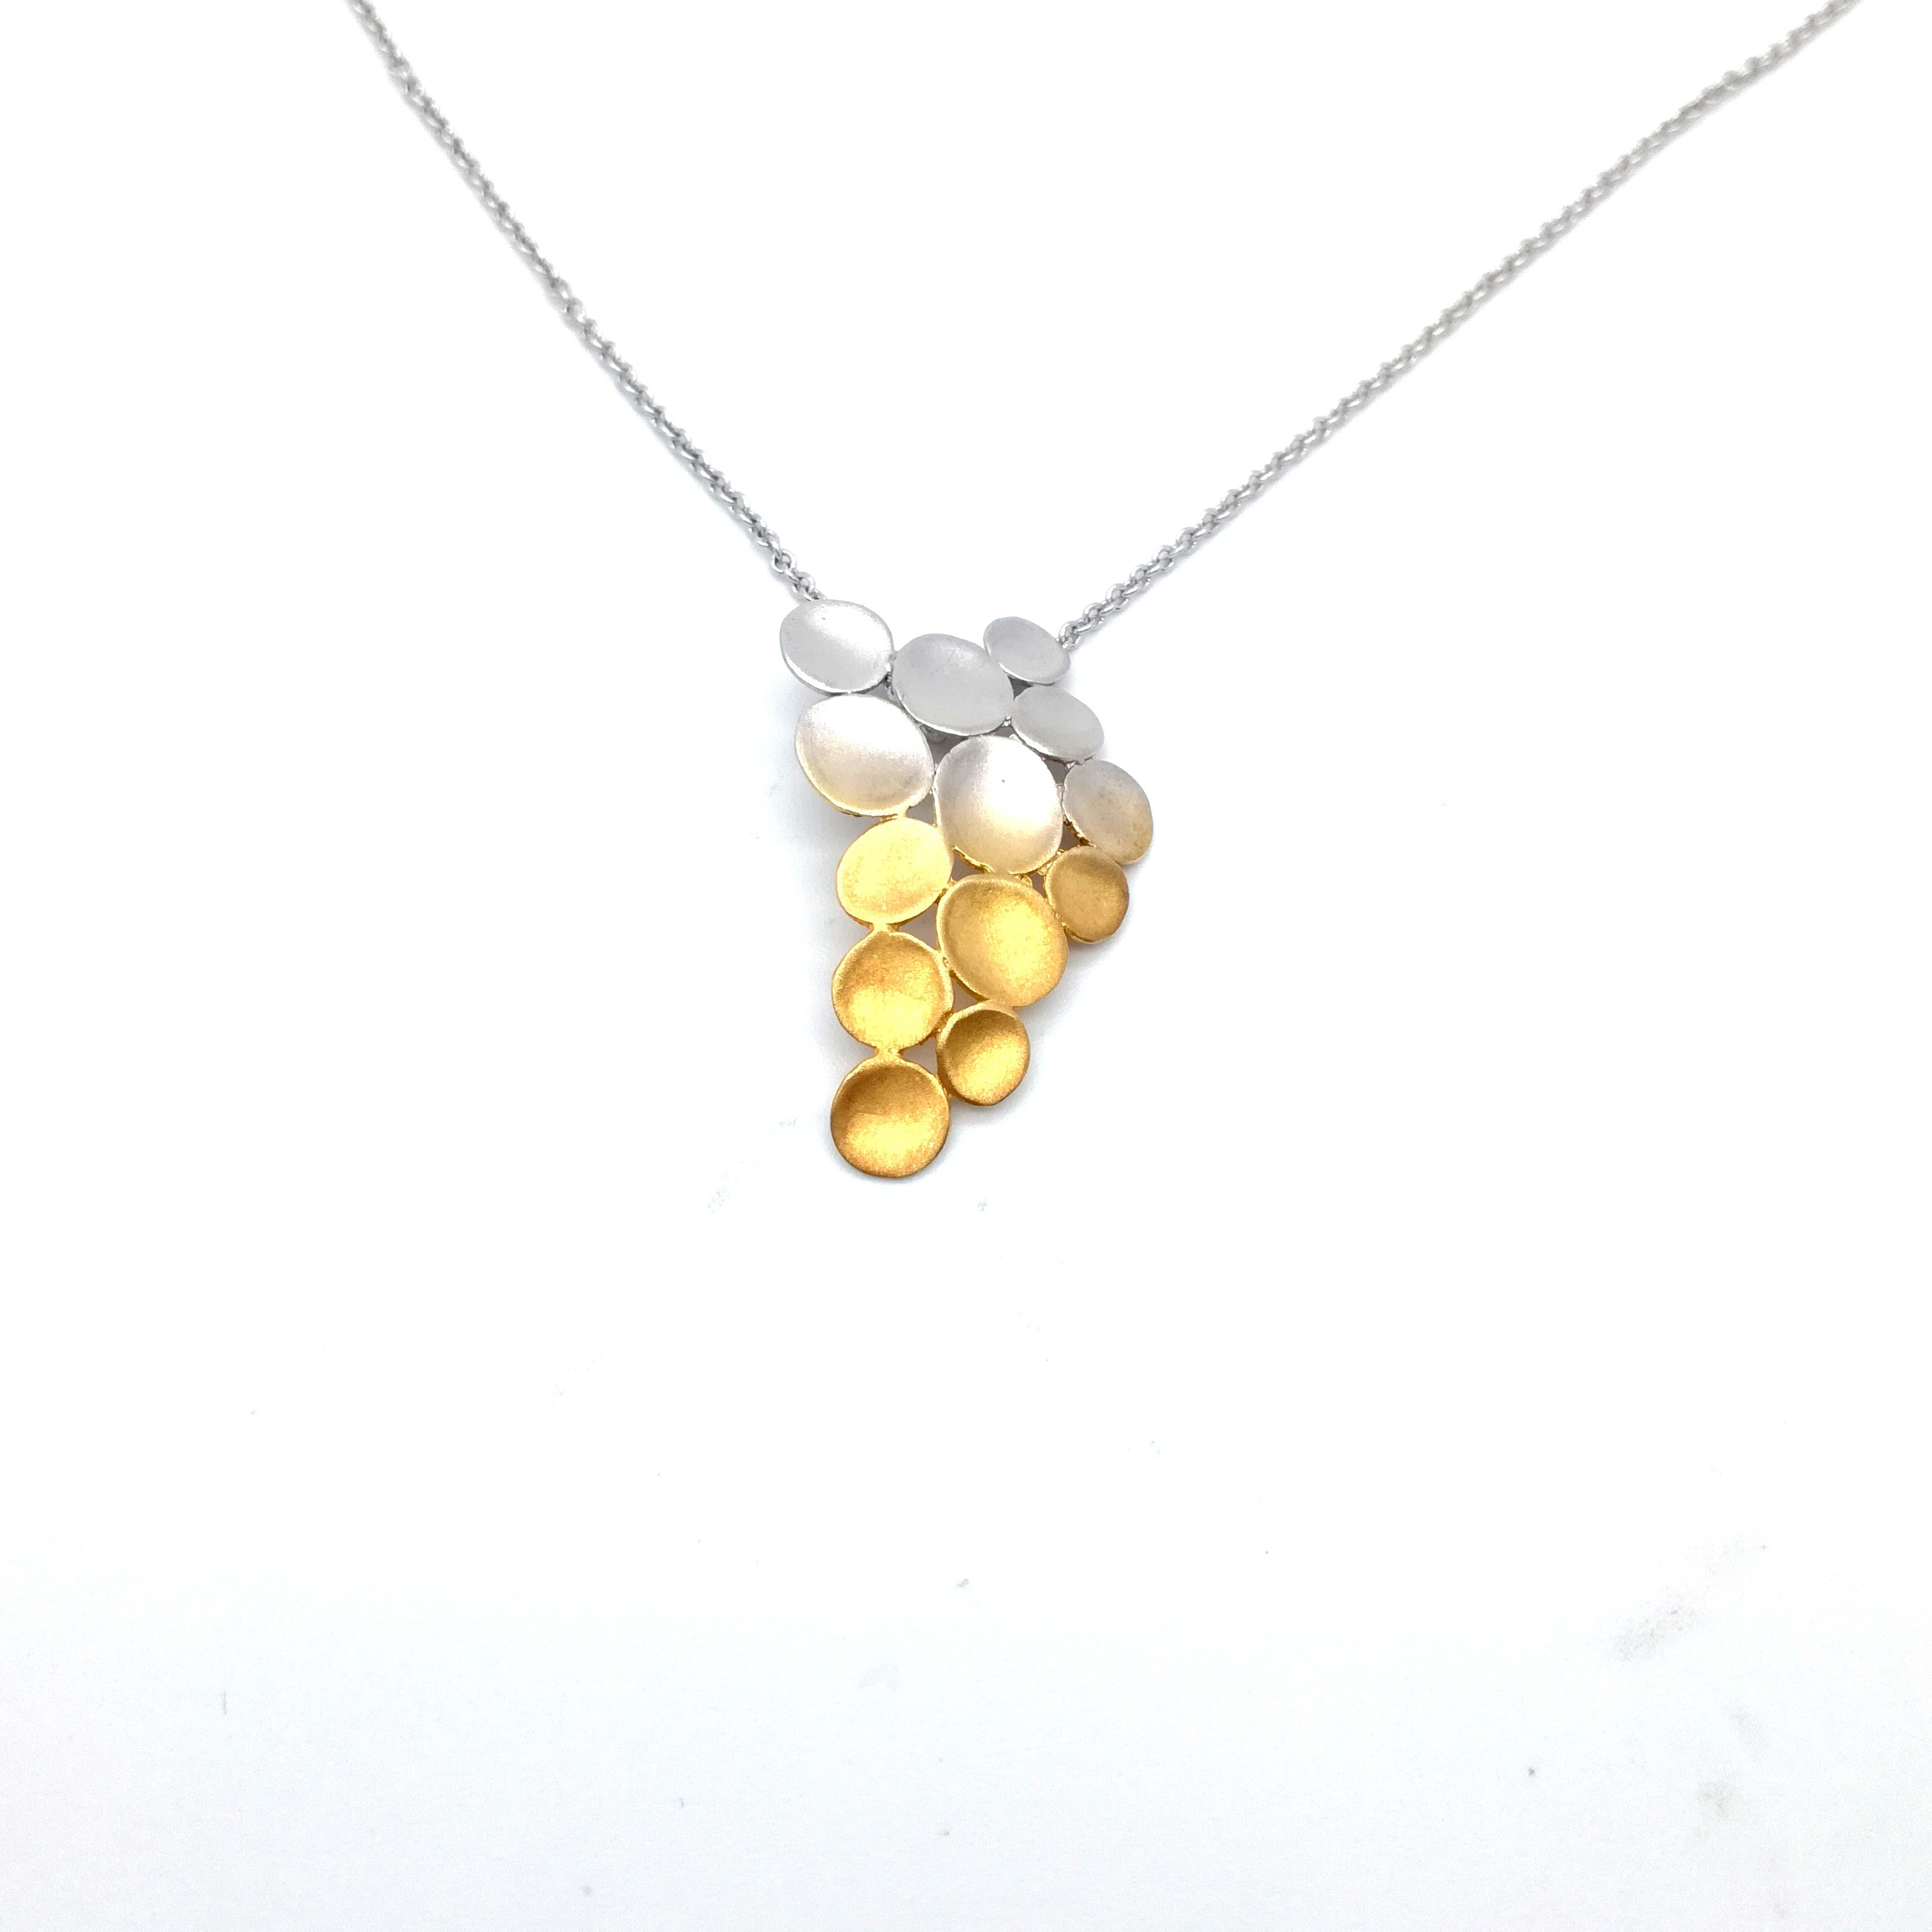 Silver pendant 925 rhodium and gold plated